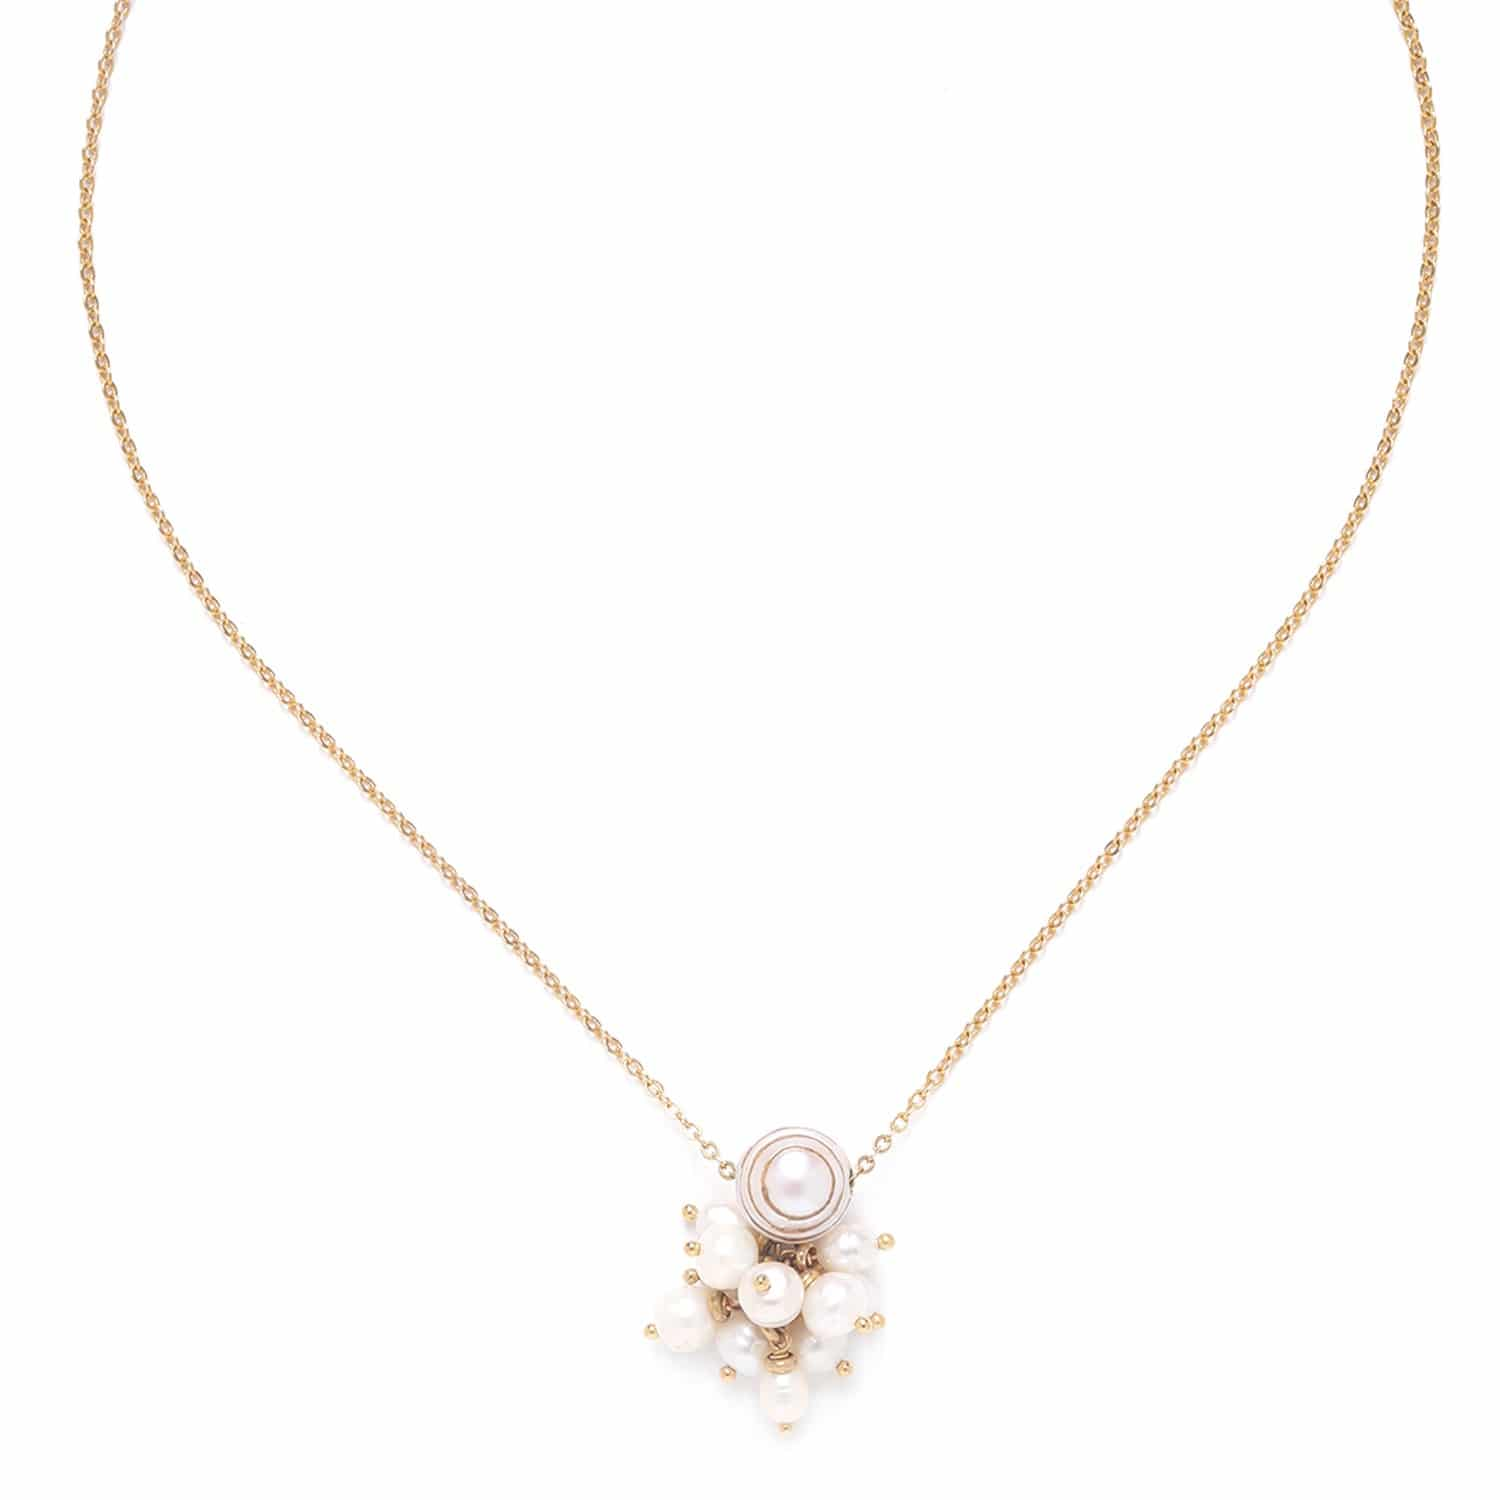 SWEET PEARL  collier grappe de perles de culture